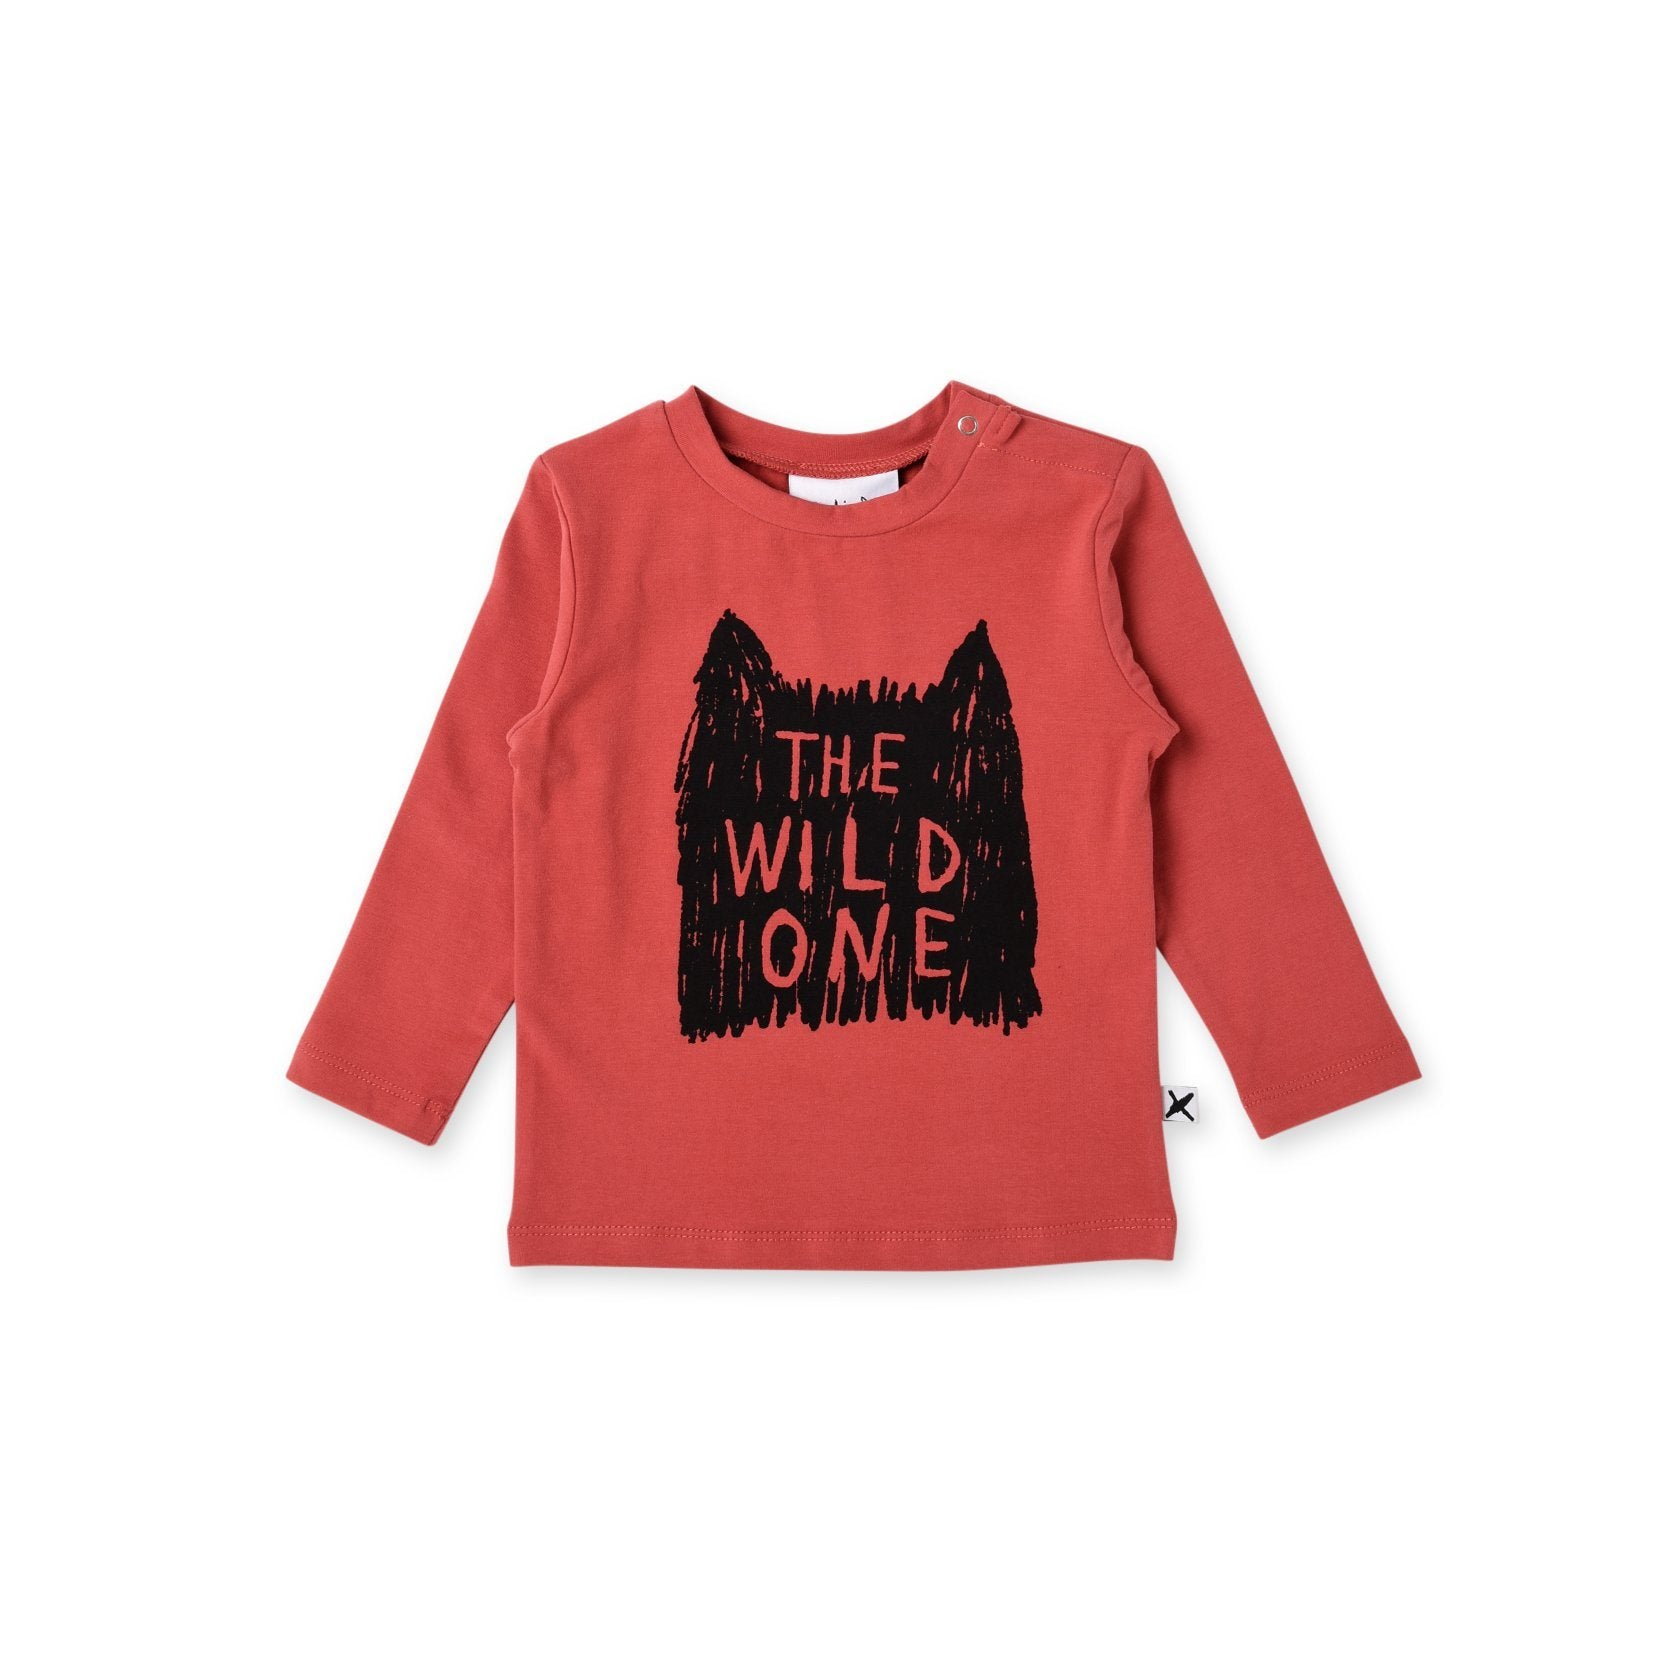 The Wild One Baby Tee (Currant)